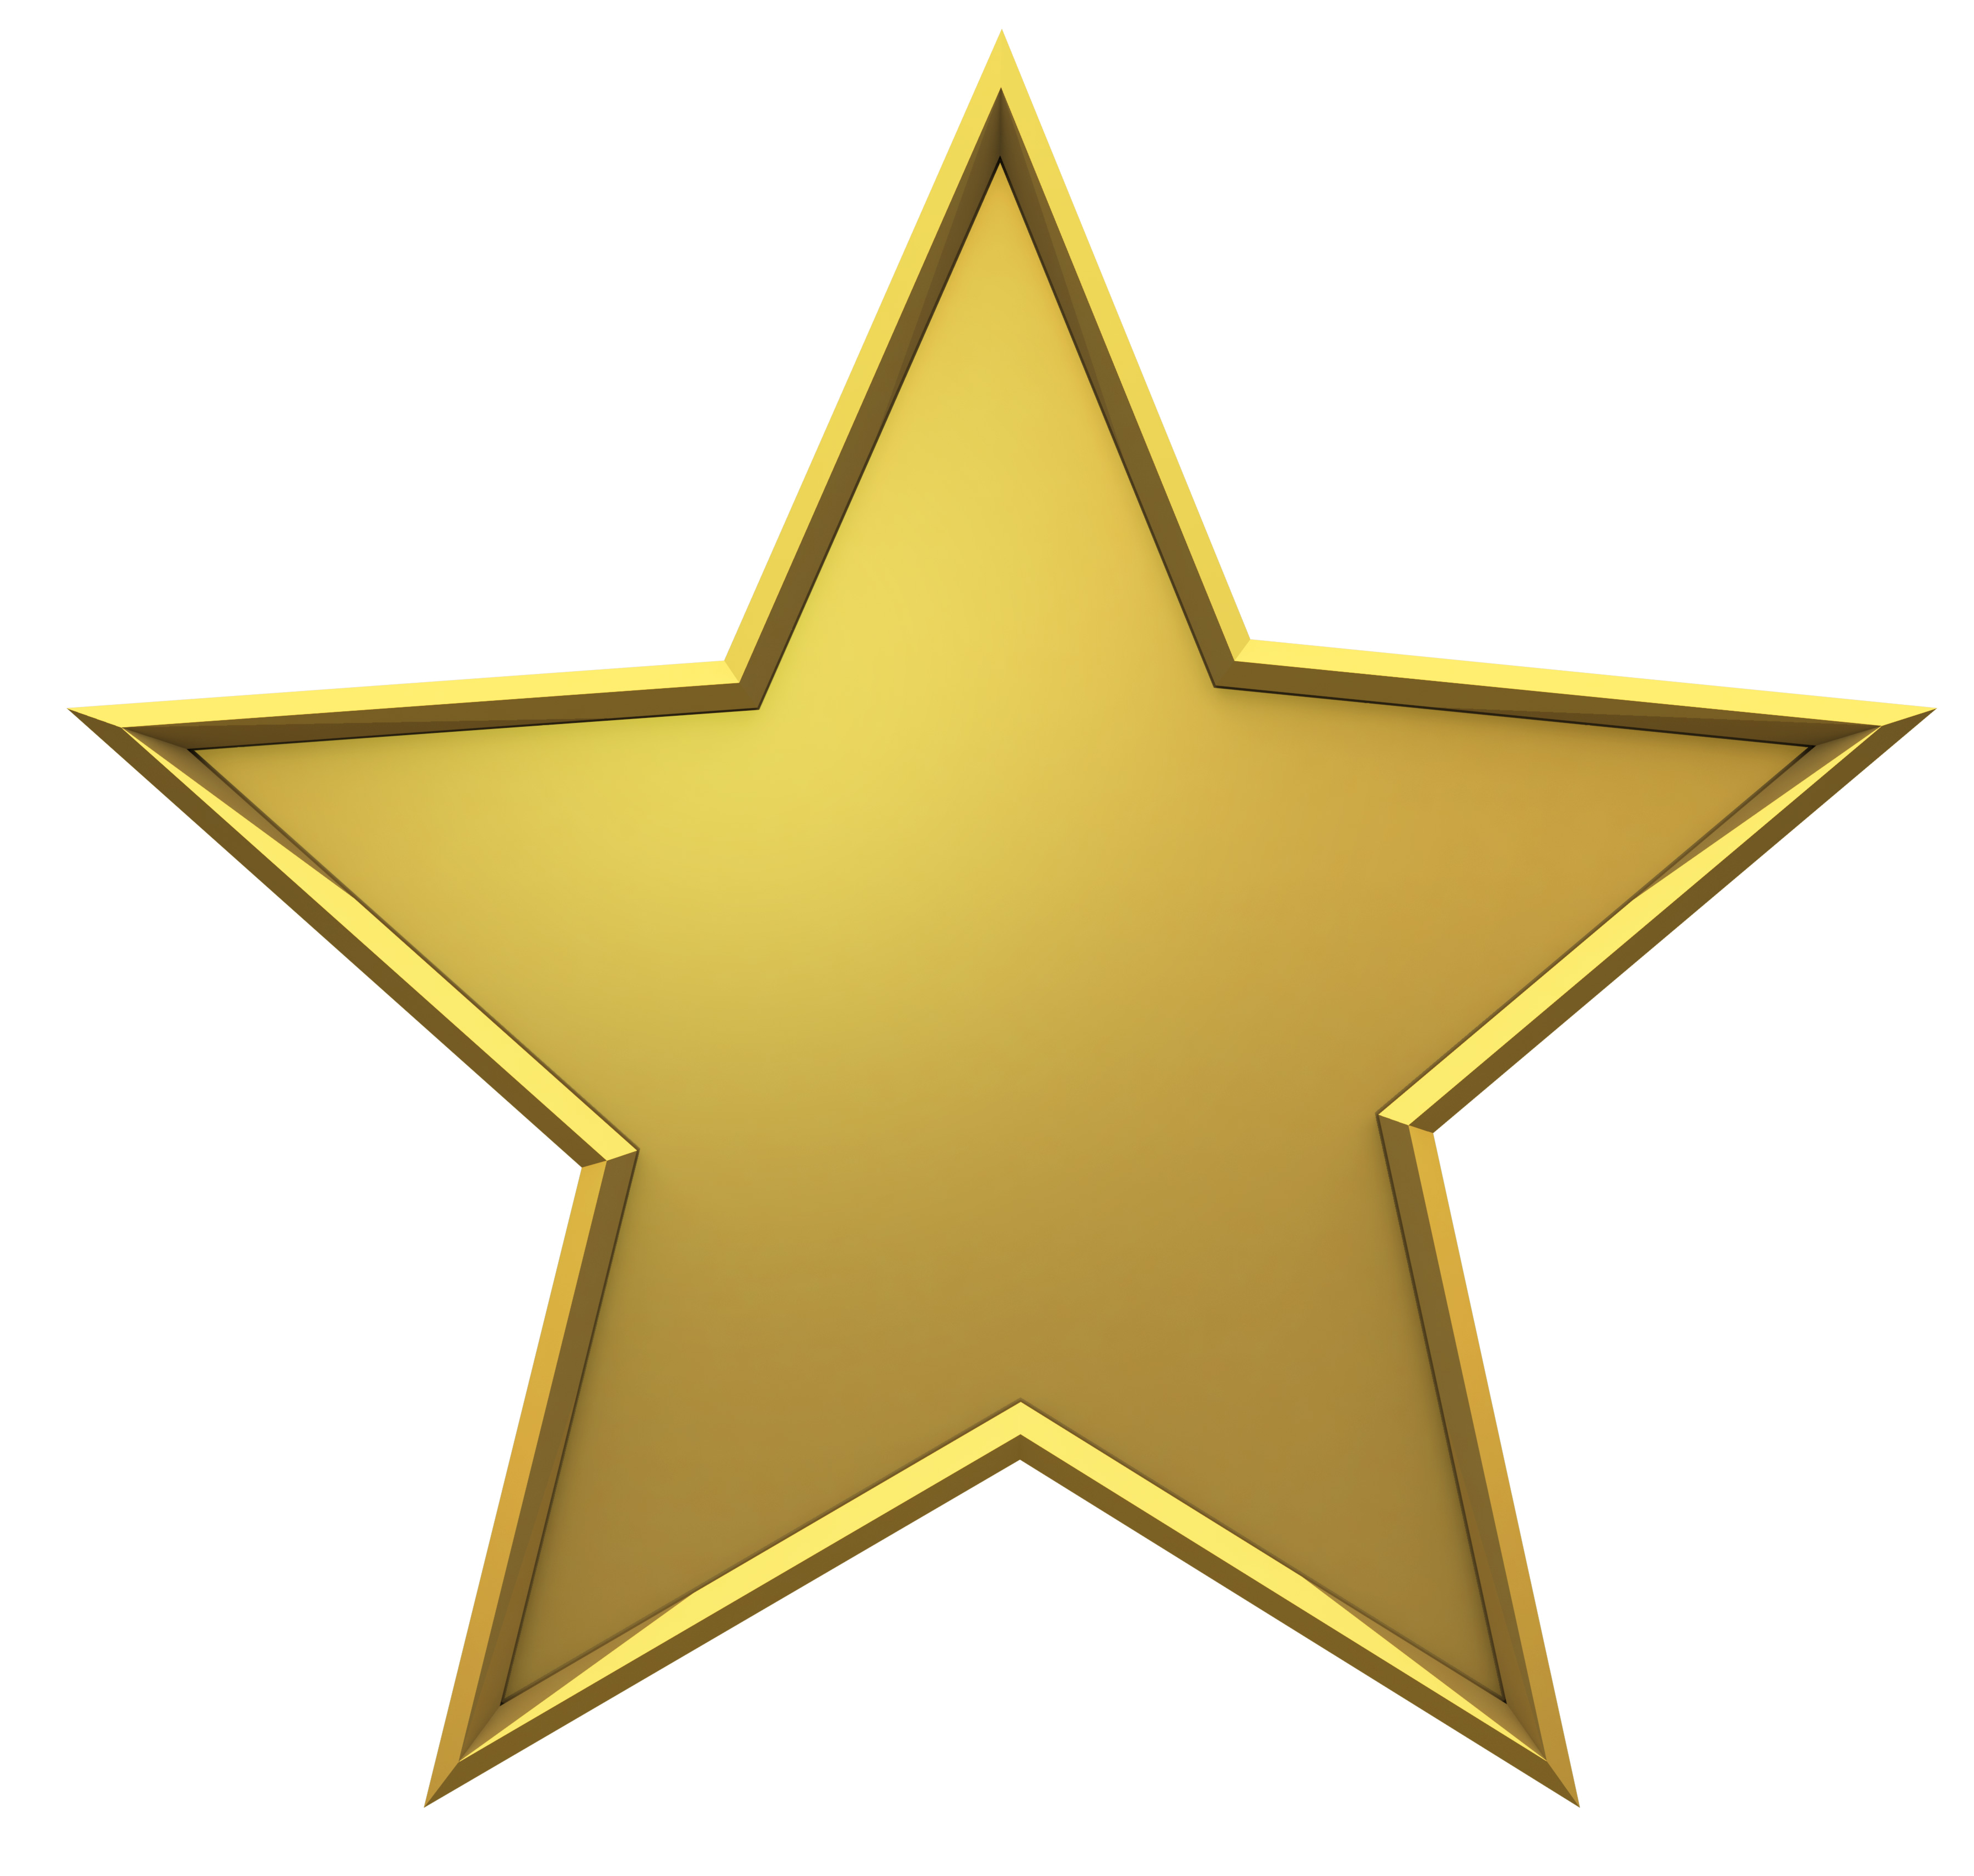 Star Png Image Star Png Image Image #615 - Star, Transparent background PNG HD thumbnail